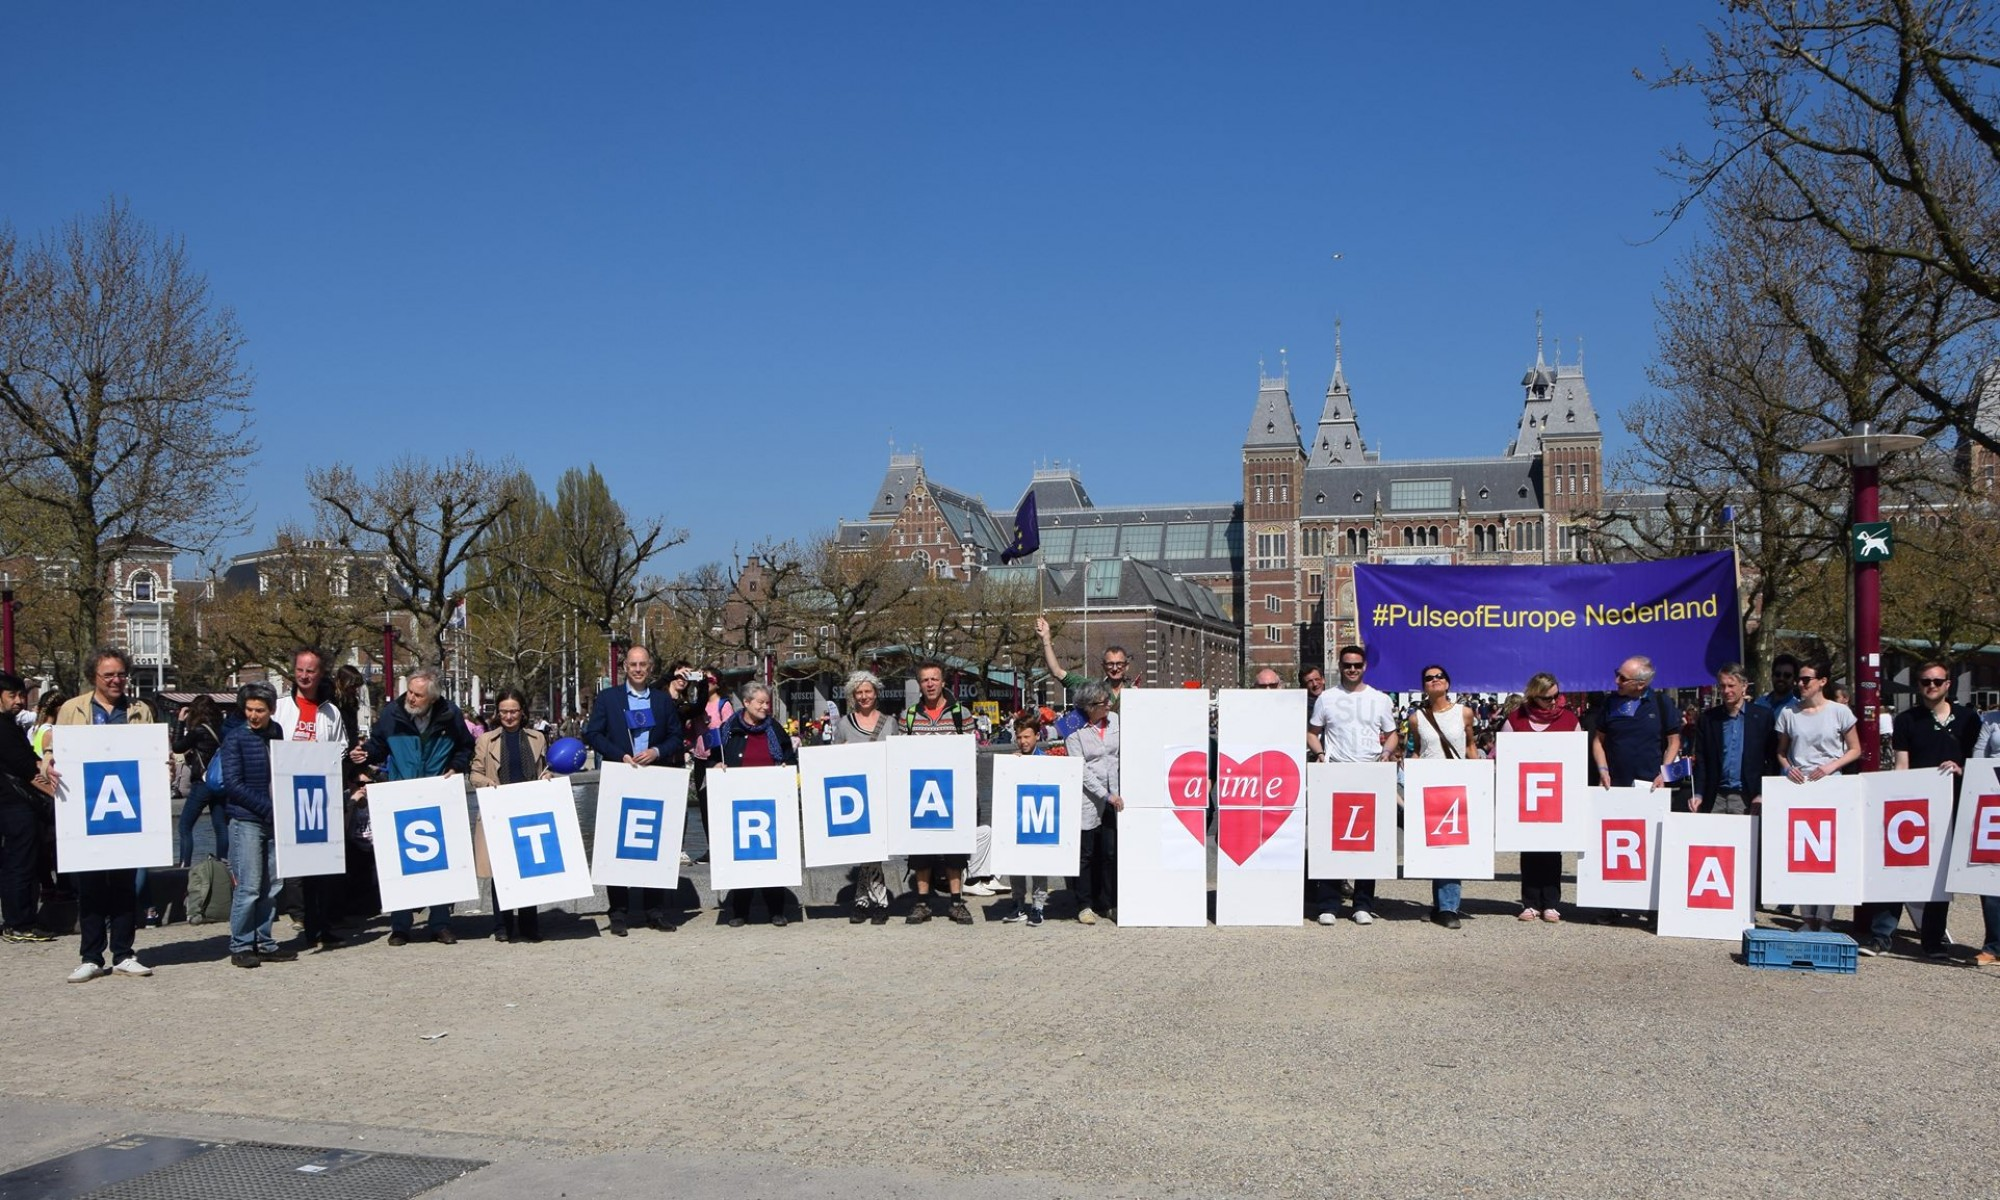 Amsterdam Pulse Of Europe